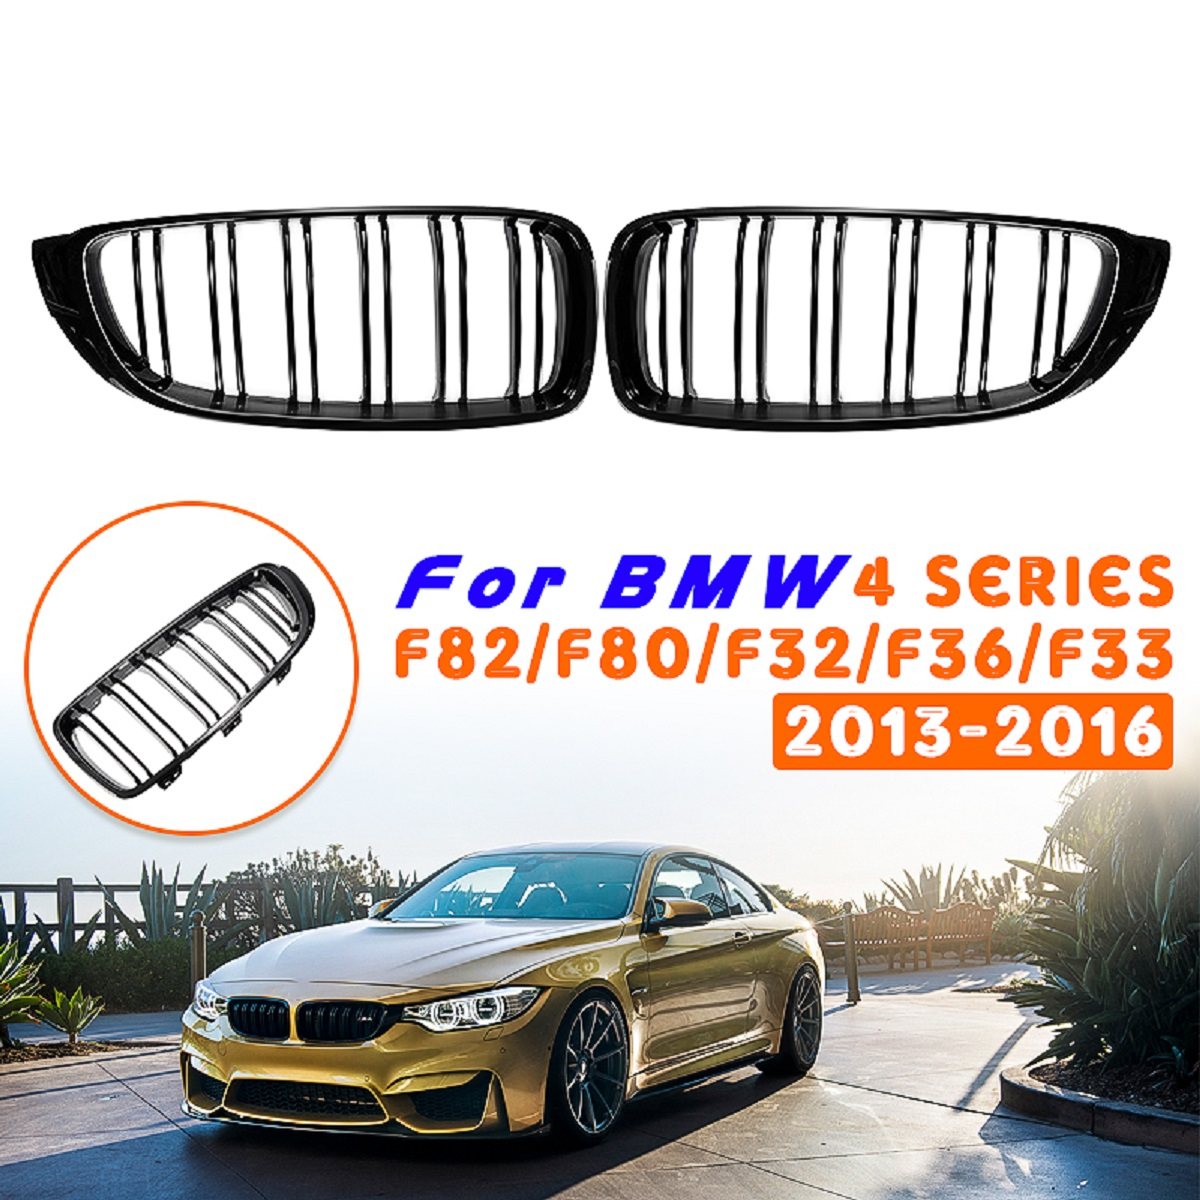 Pair Front Car Hood Kidney Sport Grills Grille For BMW F32 F33 F36 M3 M4 F80 F82  F83 4-Series 2013 2014 2015 2016Pair Front Car Hood Kidney Sport Grills Grille For BMW F32 F33 F36 M3 M4 F80 F82  F83 4-Series 2013 2014 2015 2016